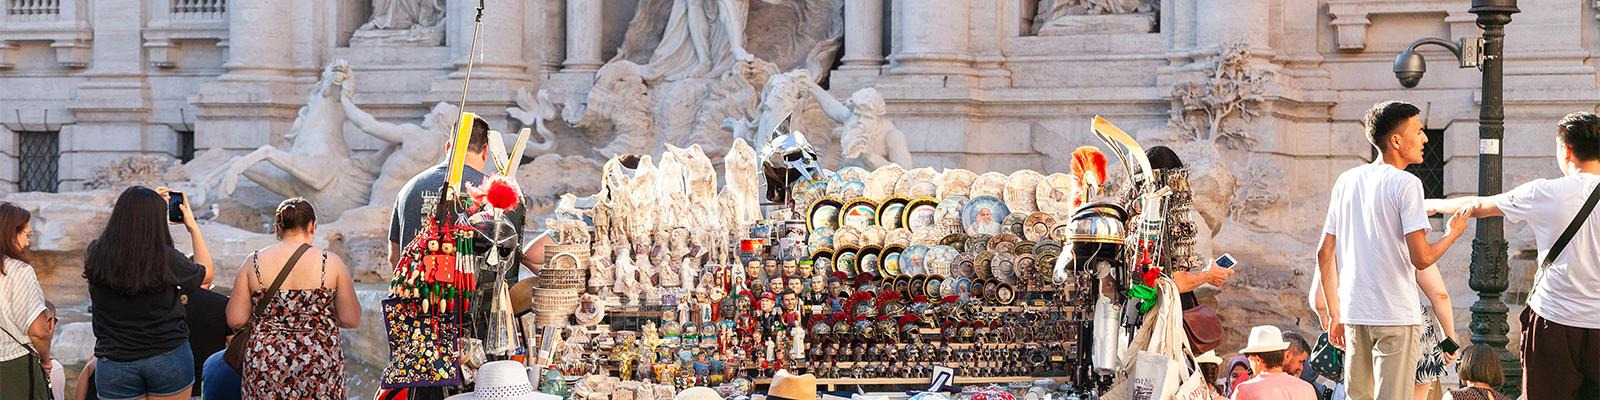 A souvenir stand at Trevi Fountain in Rome